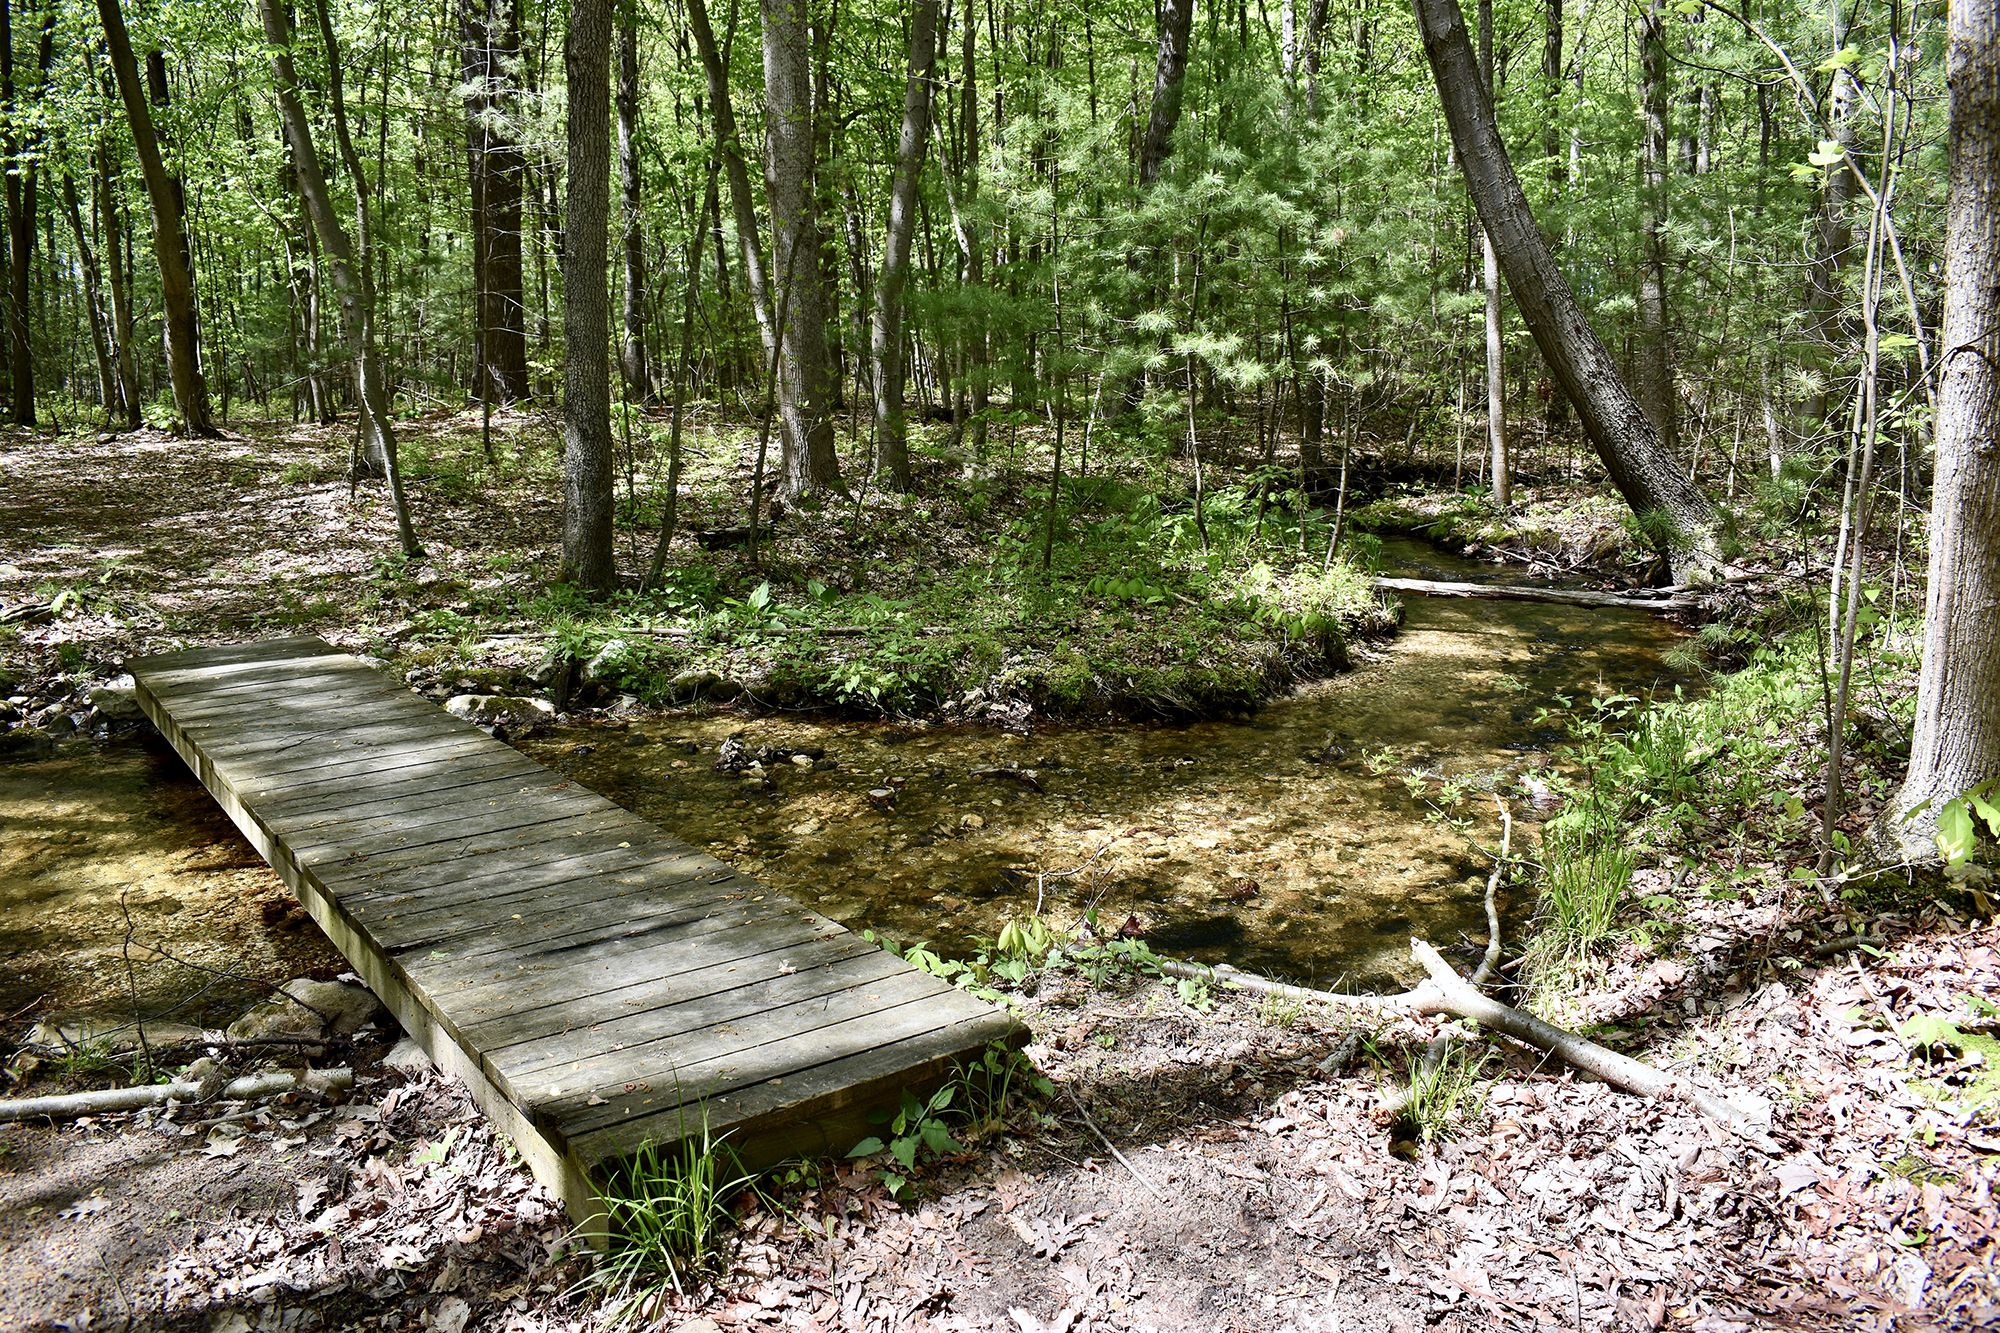 A wooden foot bridge crosses a narrow stream in wooded preserve. The shallow stream gently curves through the forest, bending off into the trees on the right. Sunlight dapples the leaf covered forest.